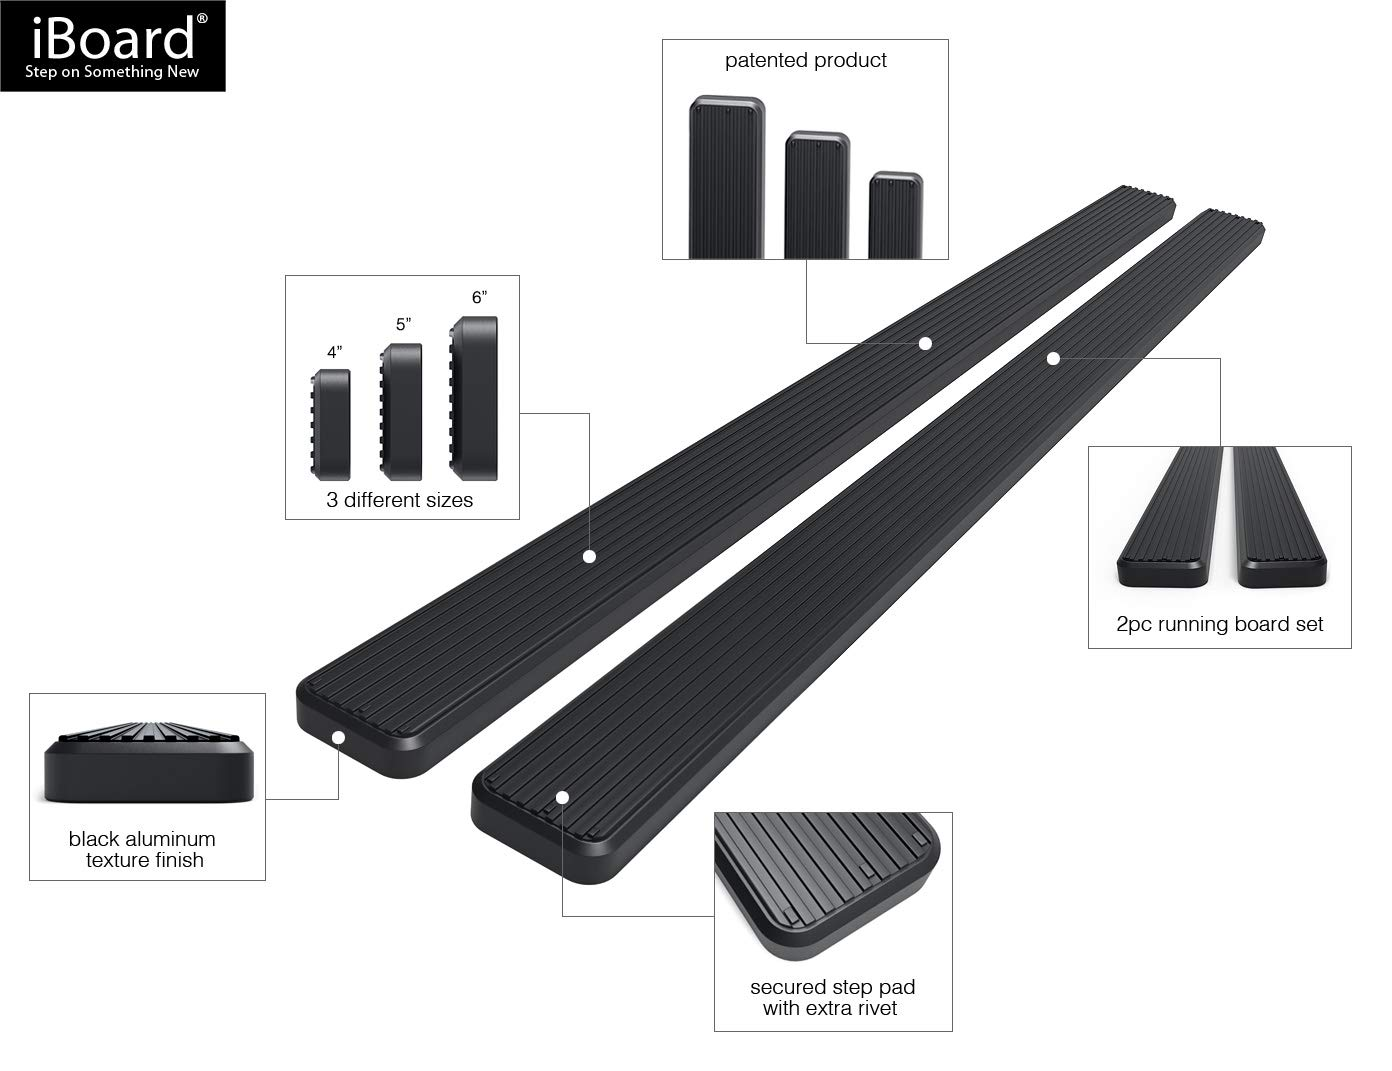 Side Steps Running Boards Step Rails For 2005-2018 Toyota Tacoma Double//Crew Cab Pickup 4-Door Nerf Bars Black Powder Coated 6 inches iBoard